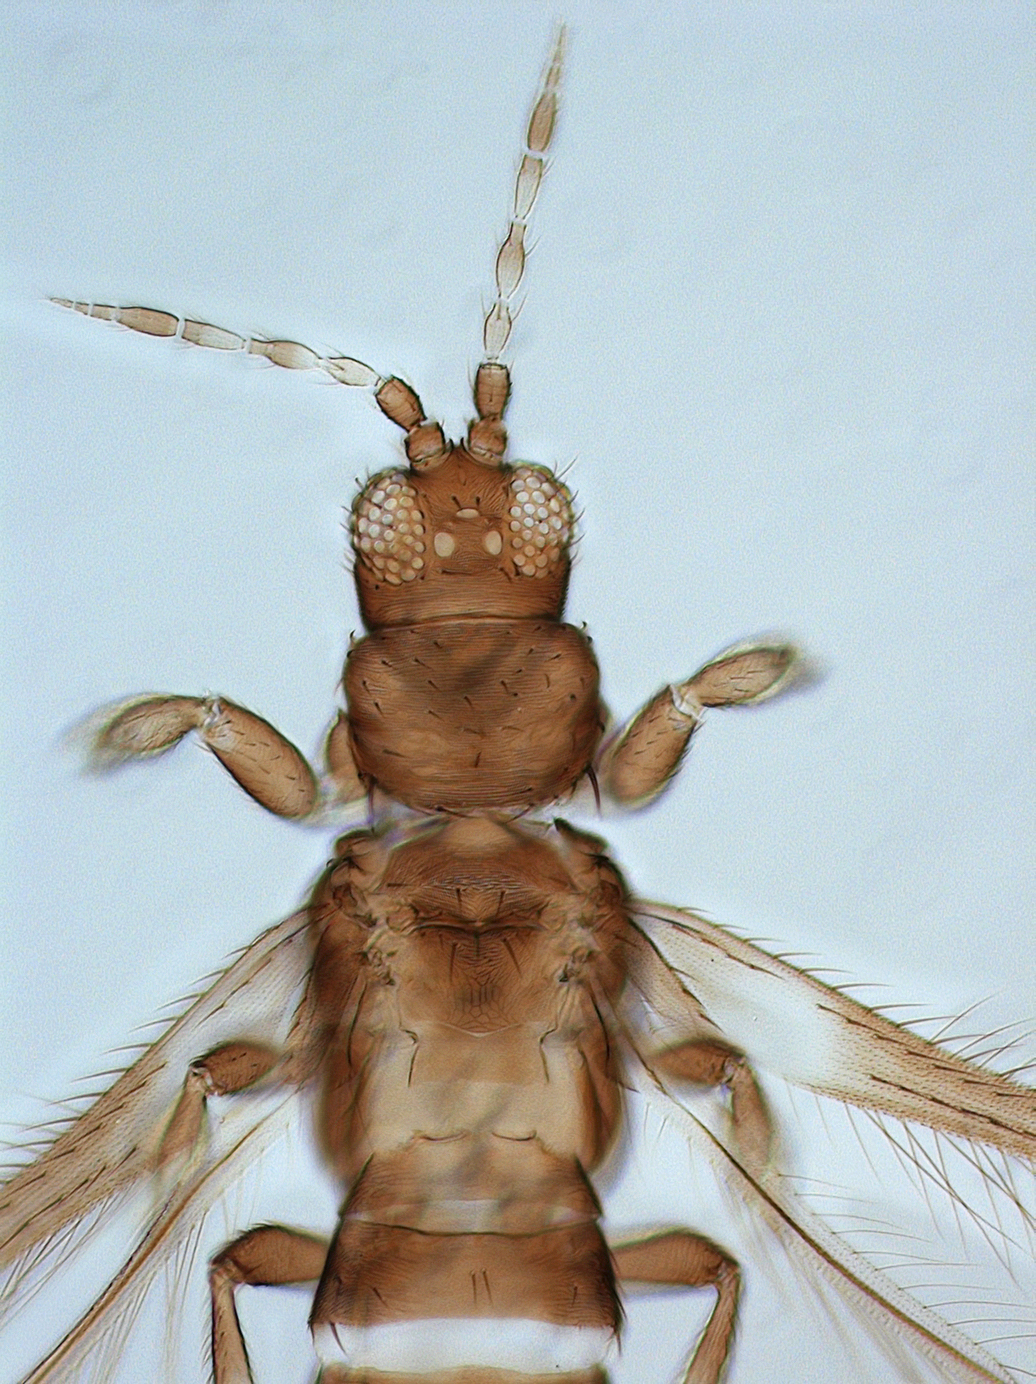 Enneothrips fuscus